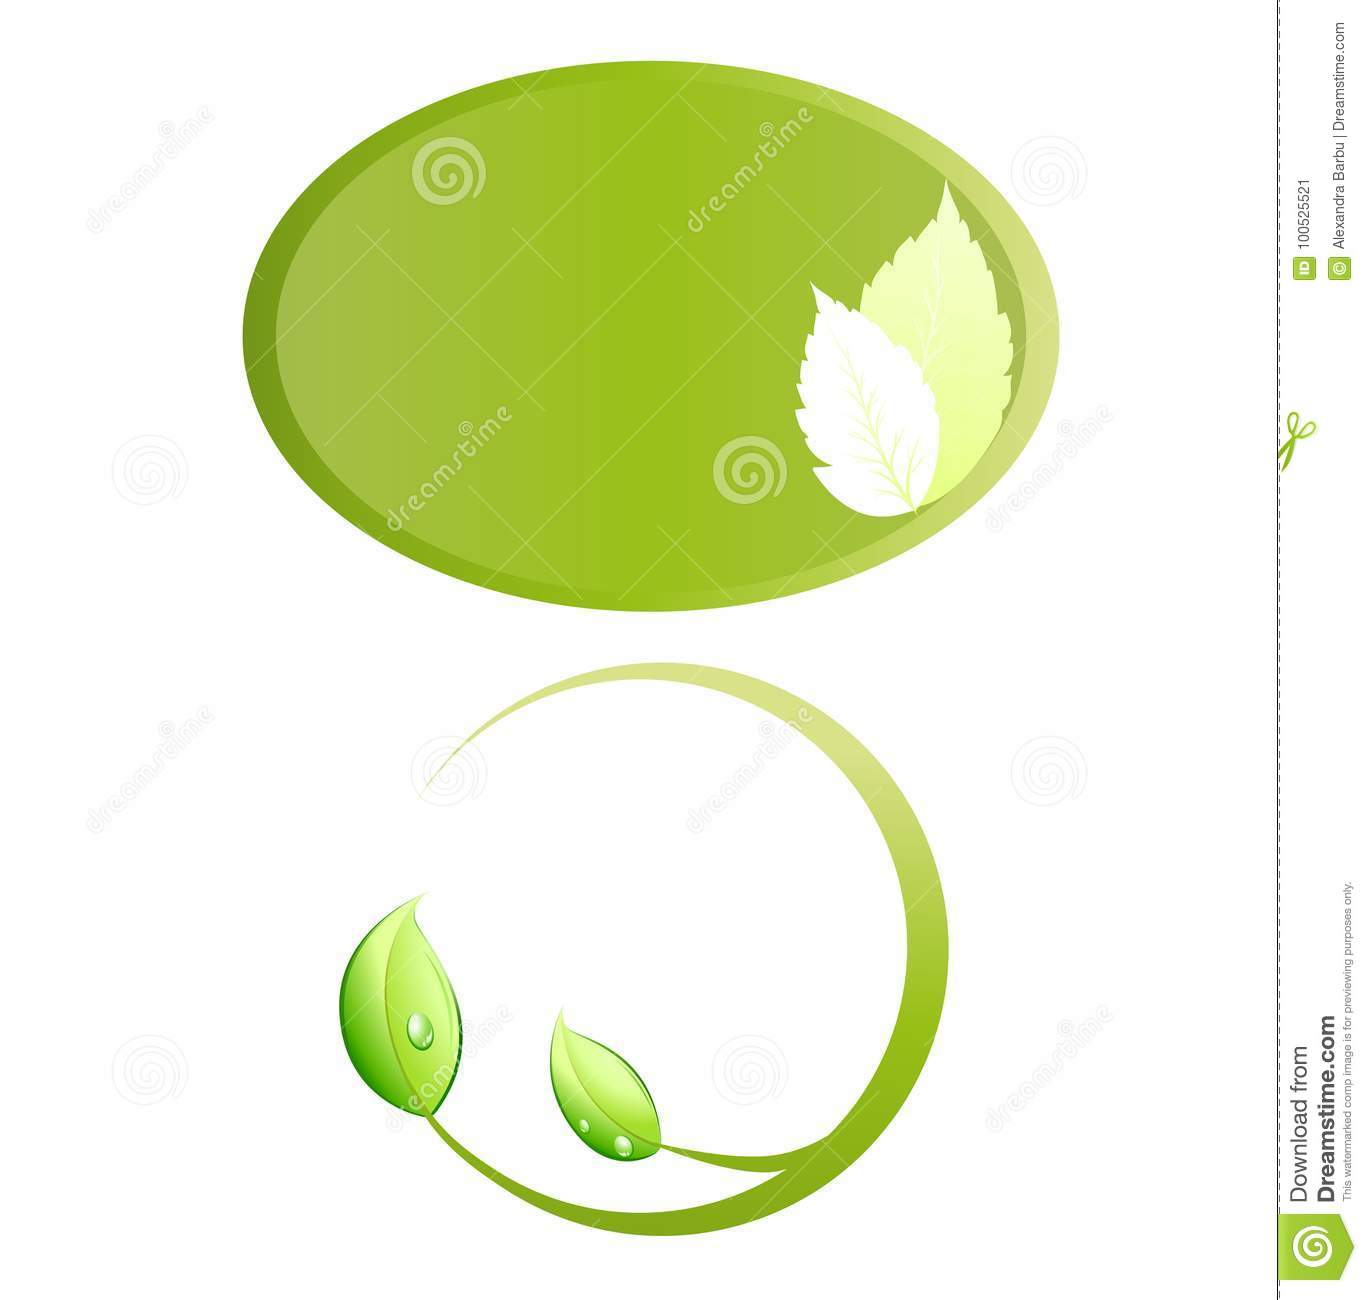 Leaves ecology logo frame vector